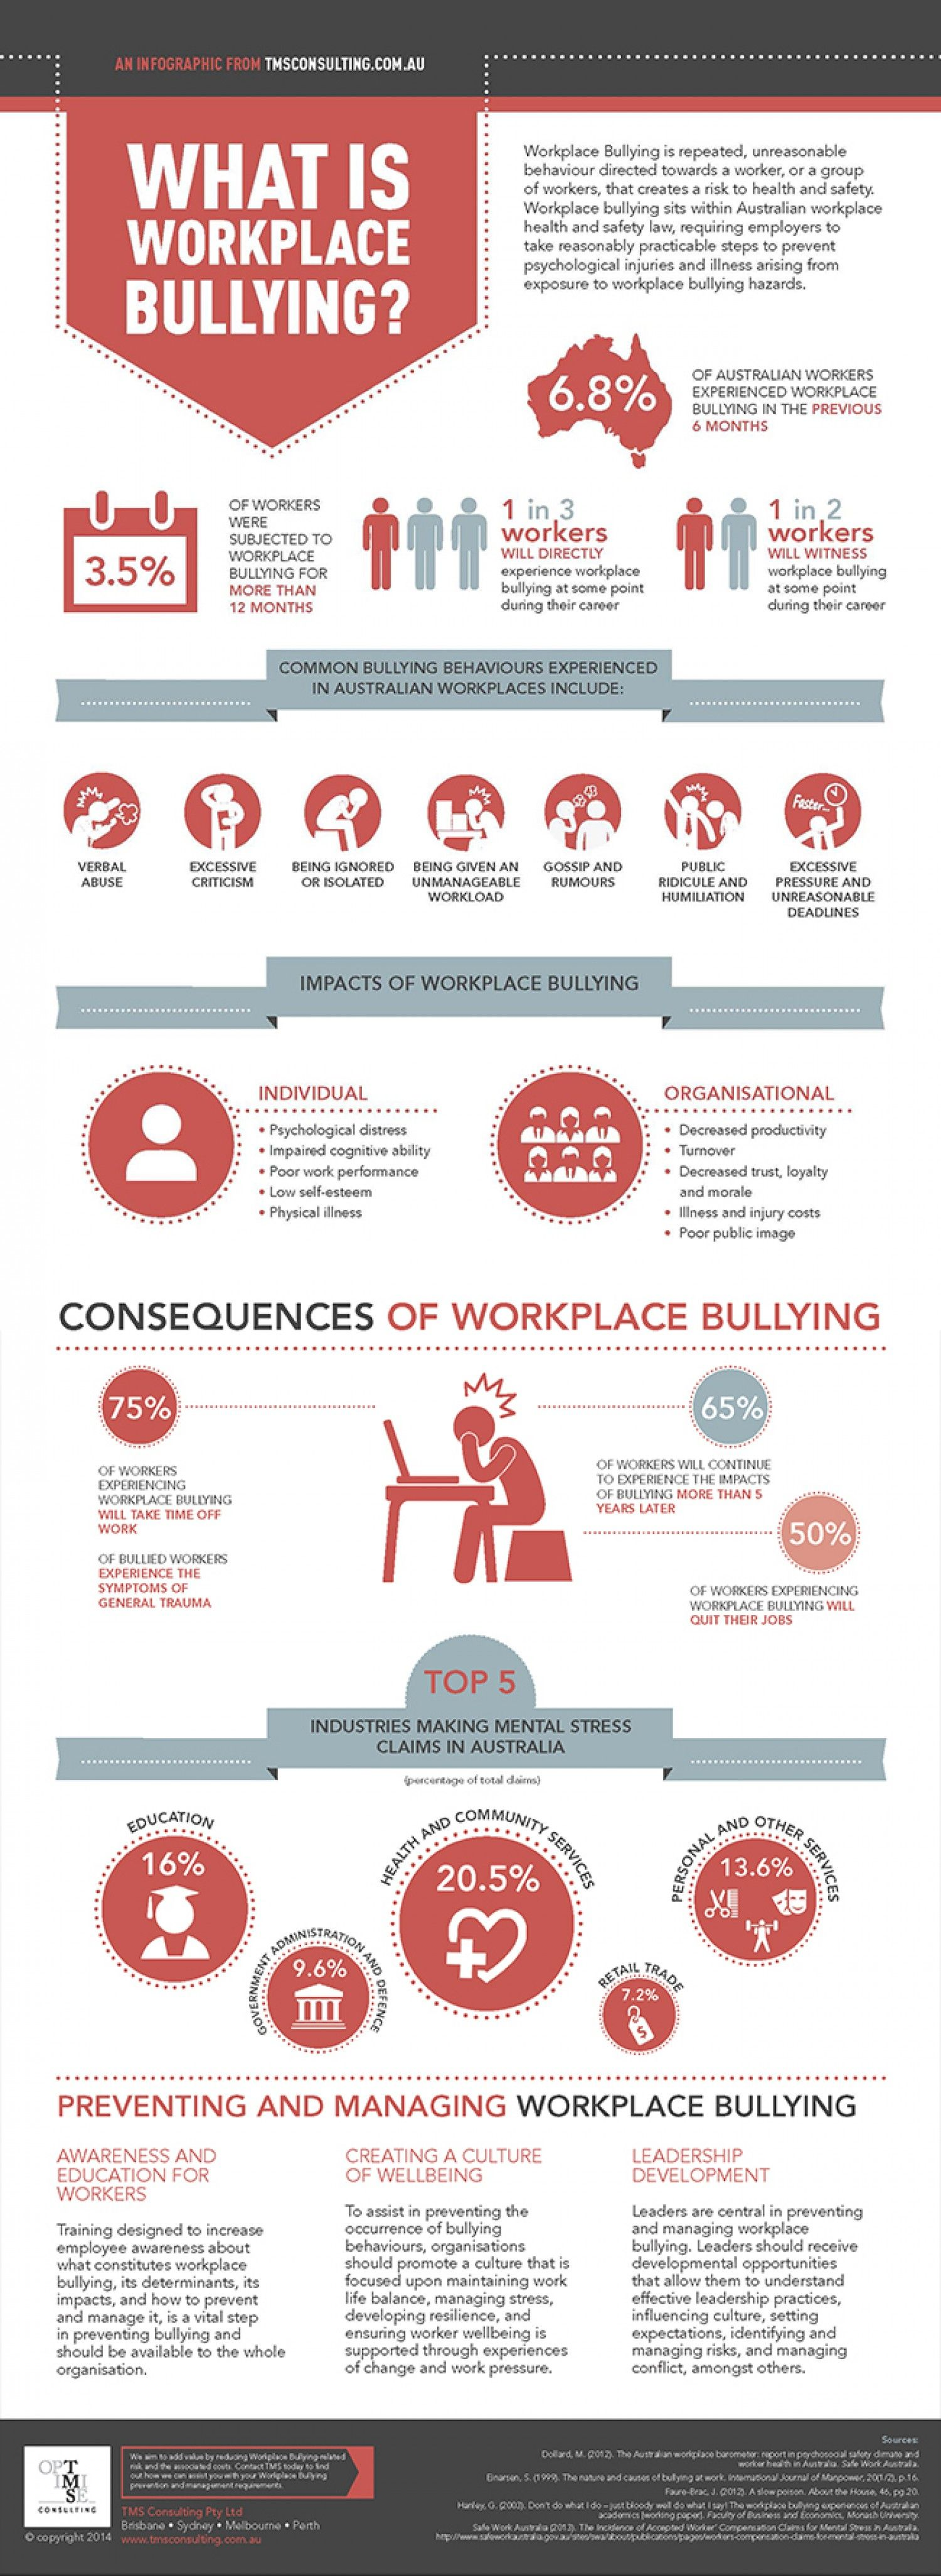 the top tips to staying stress in the workplace infographic the top tips to staying stress in the workplace infographic was designed the help everyone who works in an office to reduce their stress level